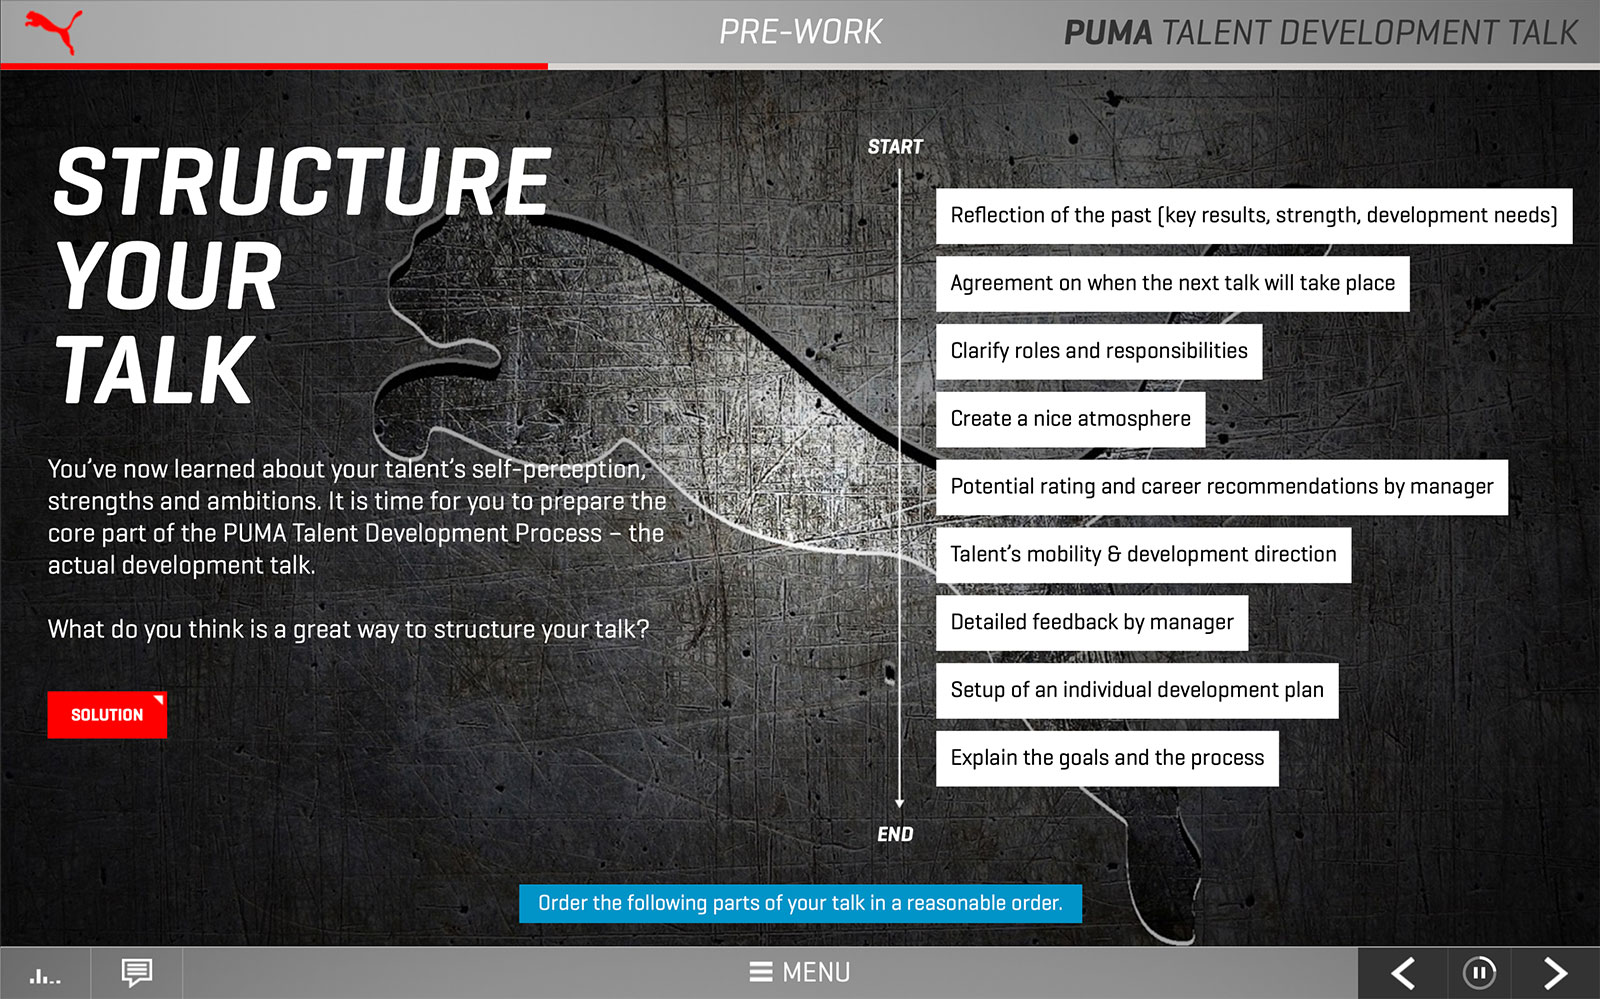 Screenshot PUMA Talent Development Talk 'Structure your talk'